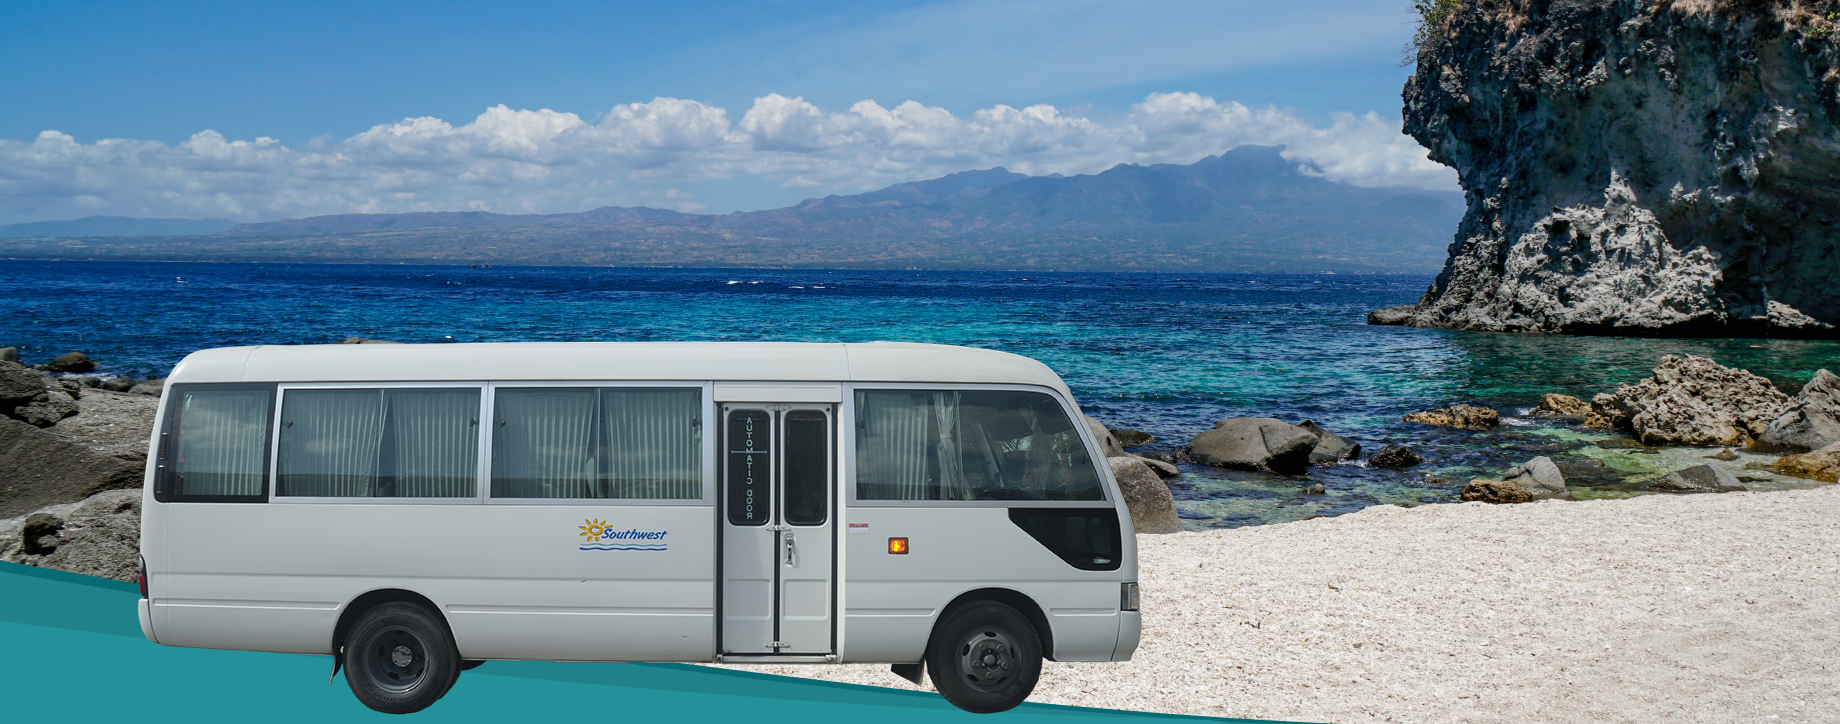 Minibus transfer from Bacolod City to any place in Linaon, La Libertad or Jimalalud